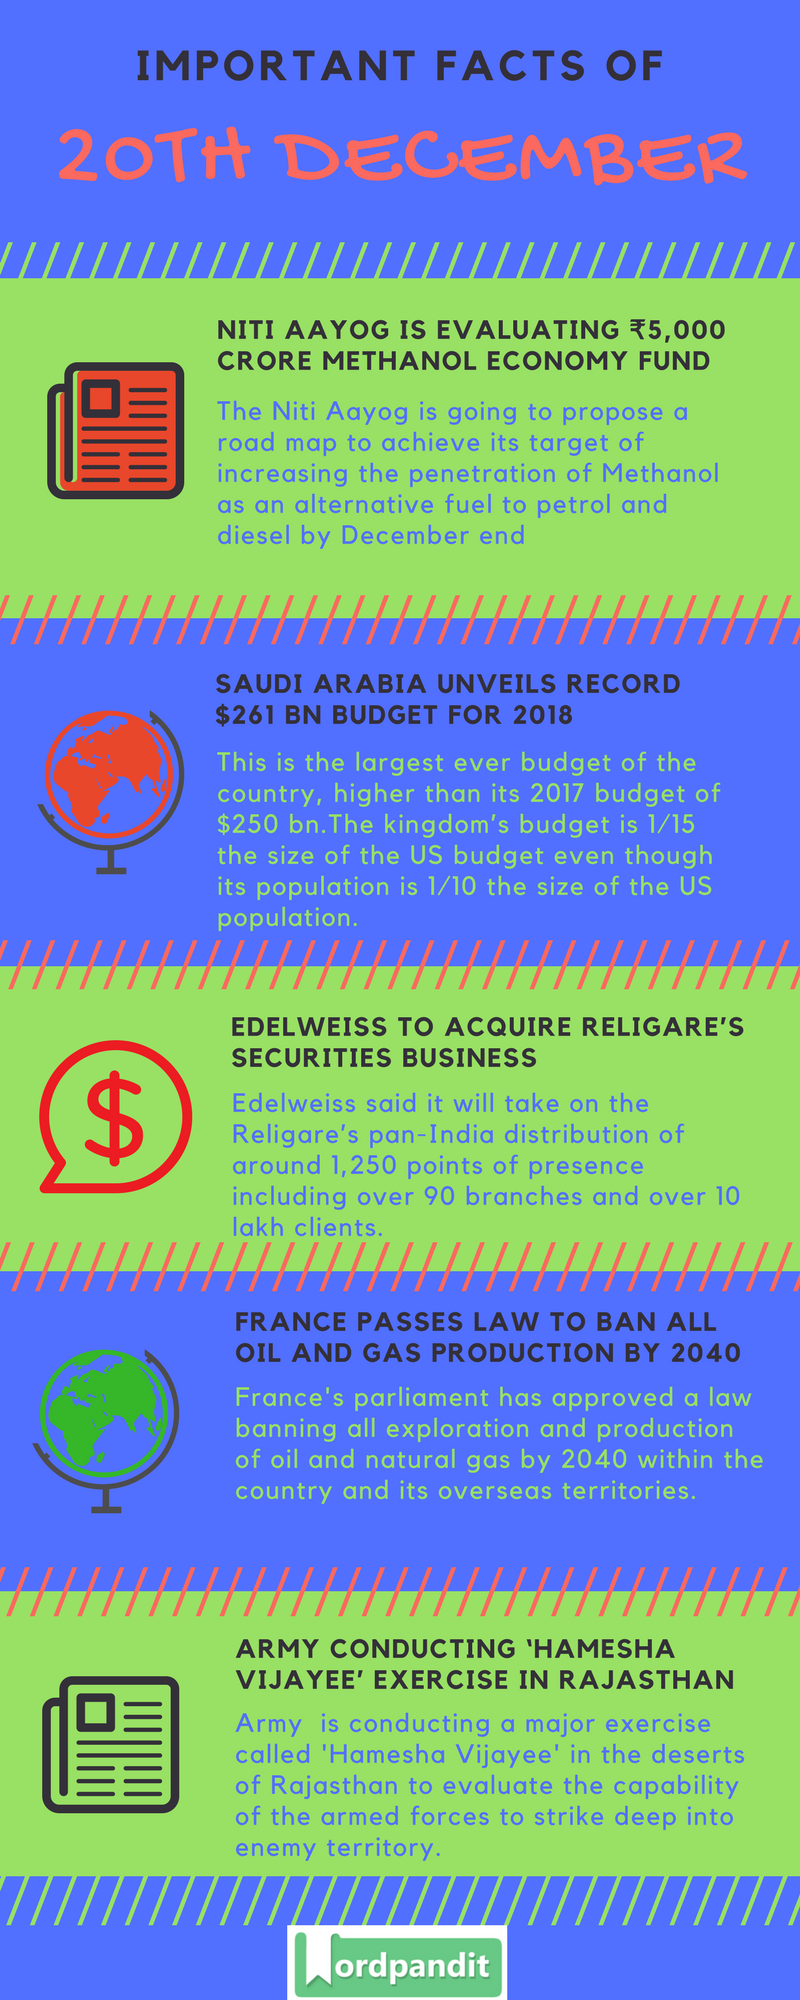 Daily-Current-Affairs-20-december-2017-Current-Affairs-Quiz-december-20-2017-Current-Affairs-Infographic